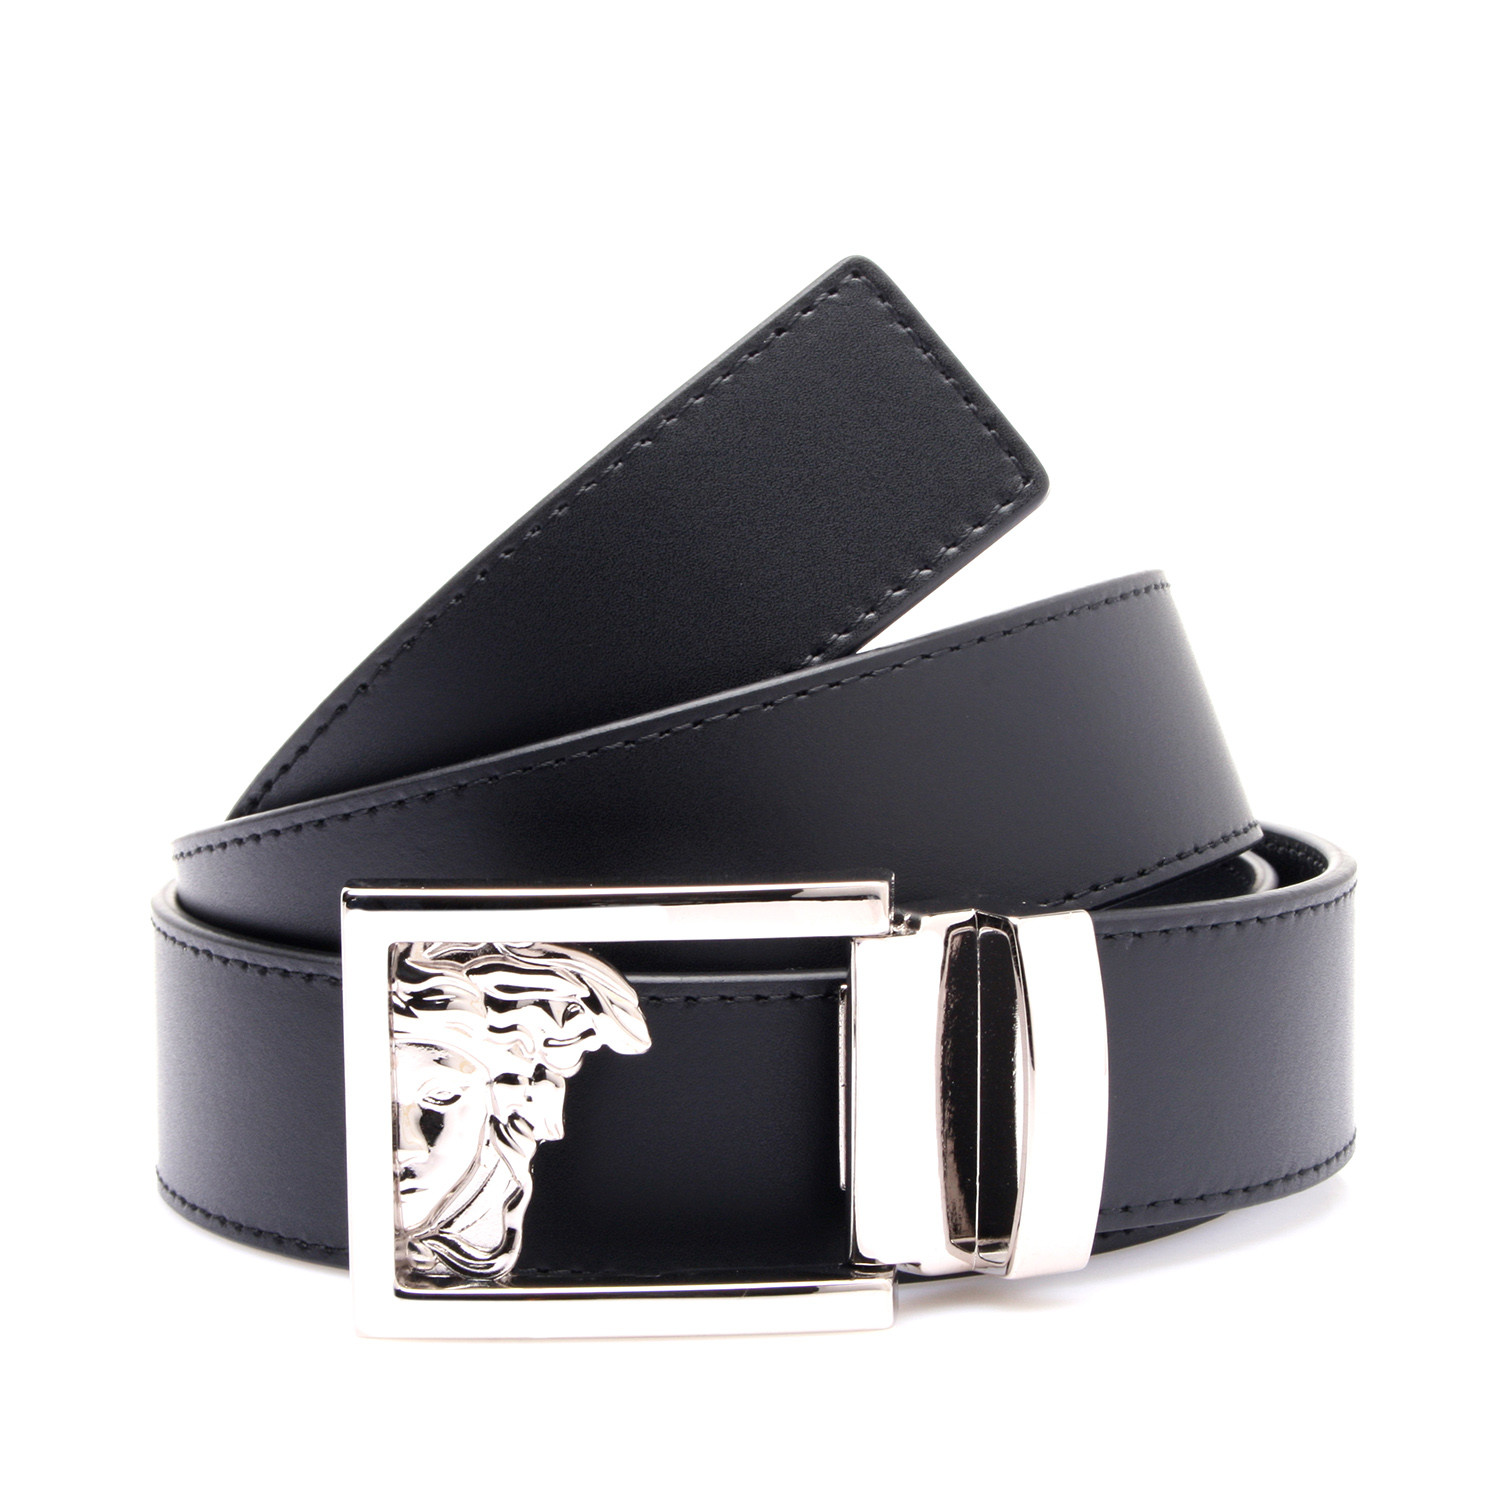 b914d4412f F18d95f1cf18450a12b4fa7799e786ee medium · Medusa Buckle Smooth Leather Belt  ...